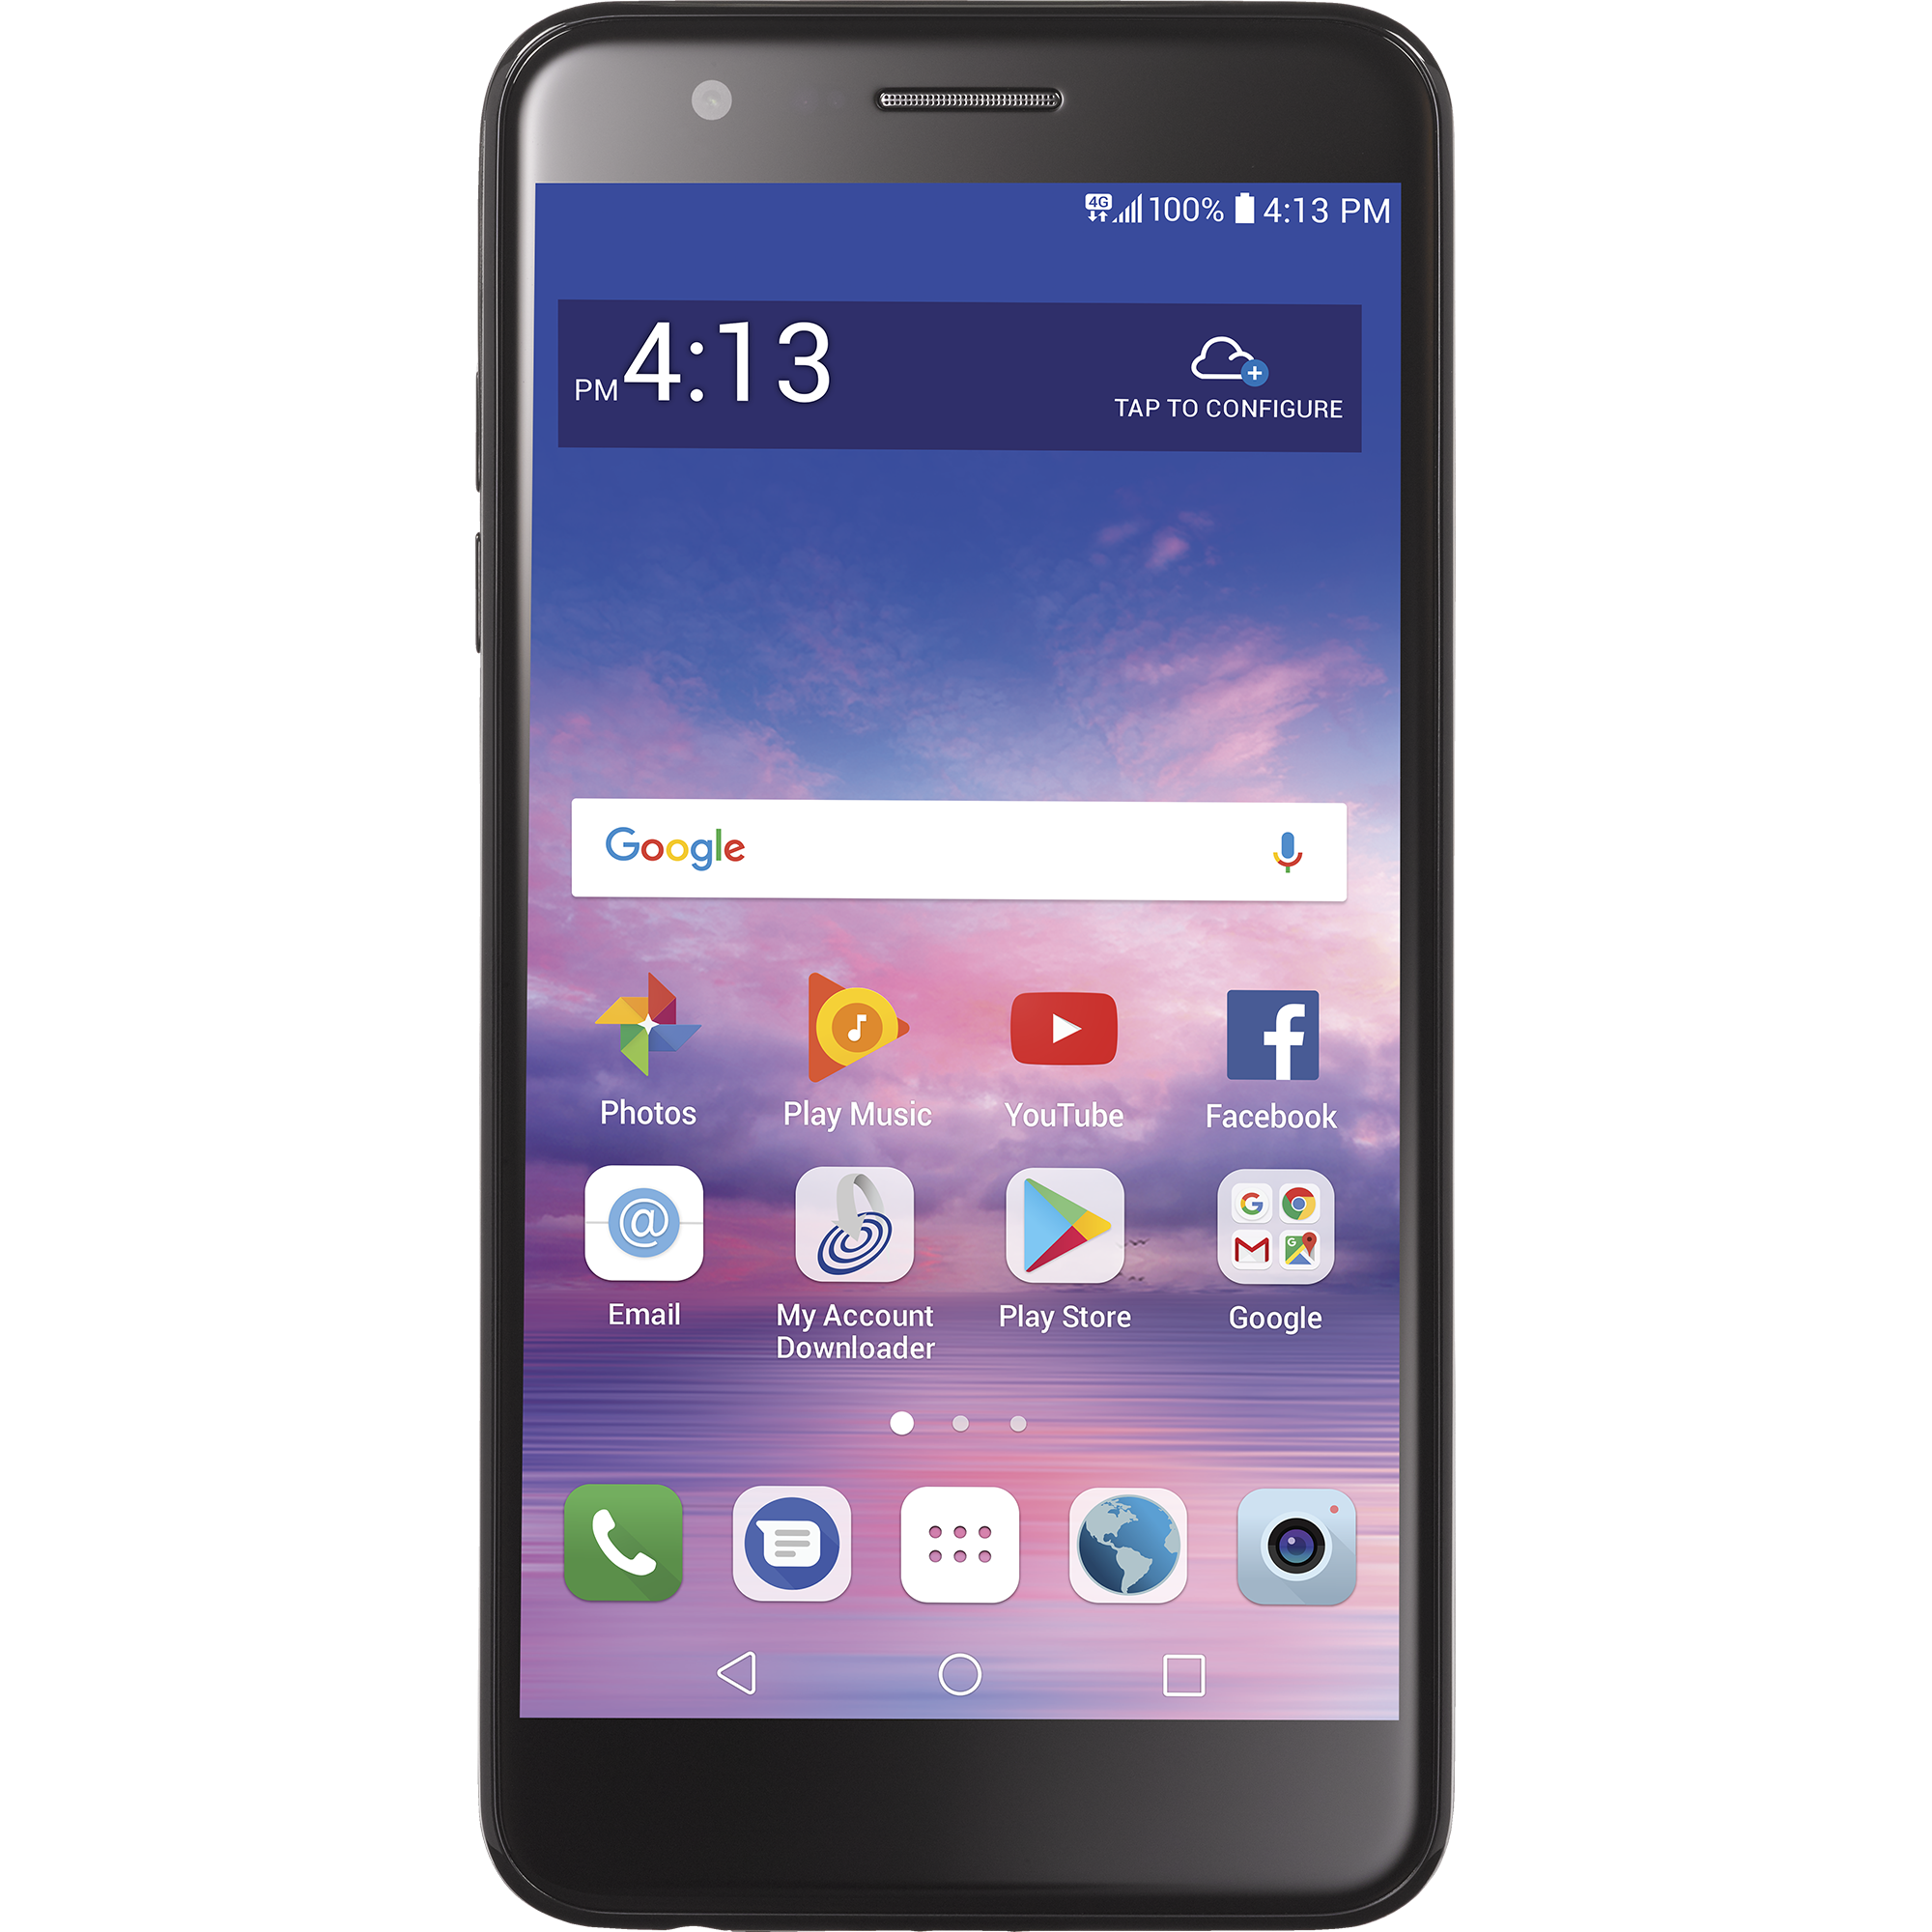 Total Wireless LG Premier Pro Prepaid Smartphone